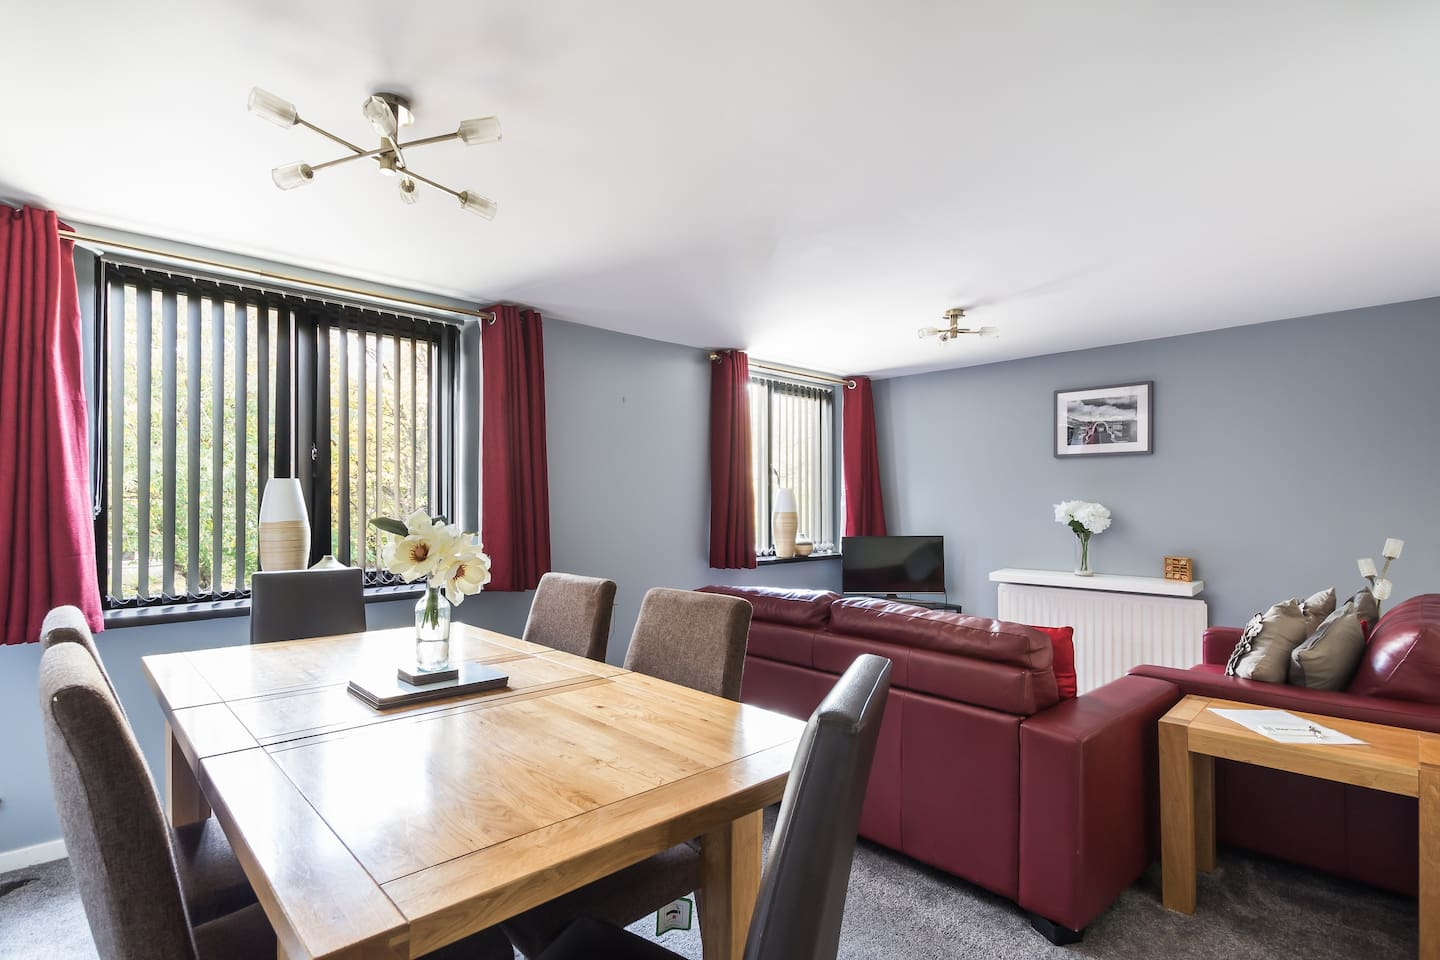 Ouseburn Suite is 1 of 3 apartments close to Newcastle City Centre, RVi and University.  Great space for socialising or for having a meeting.